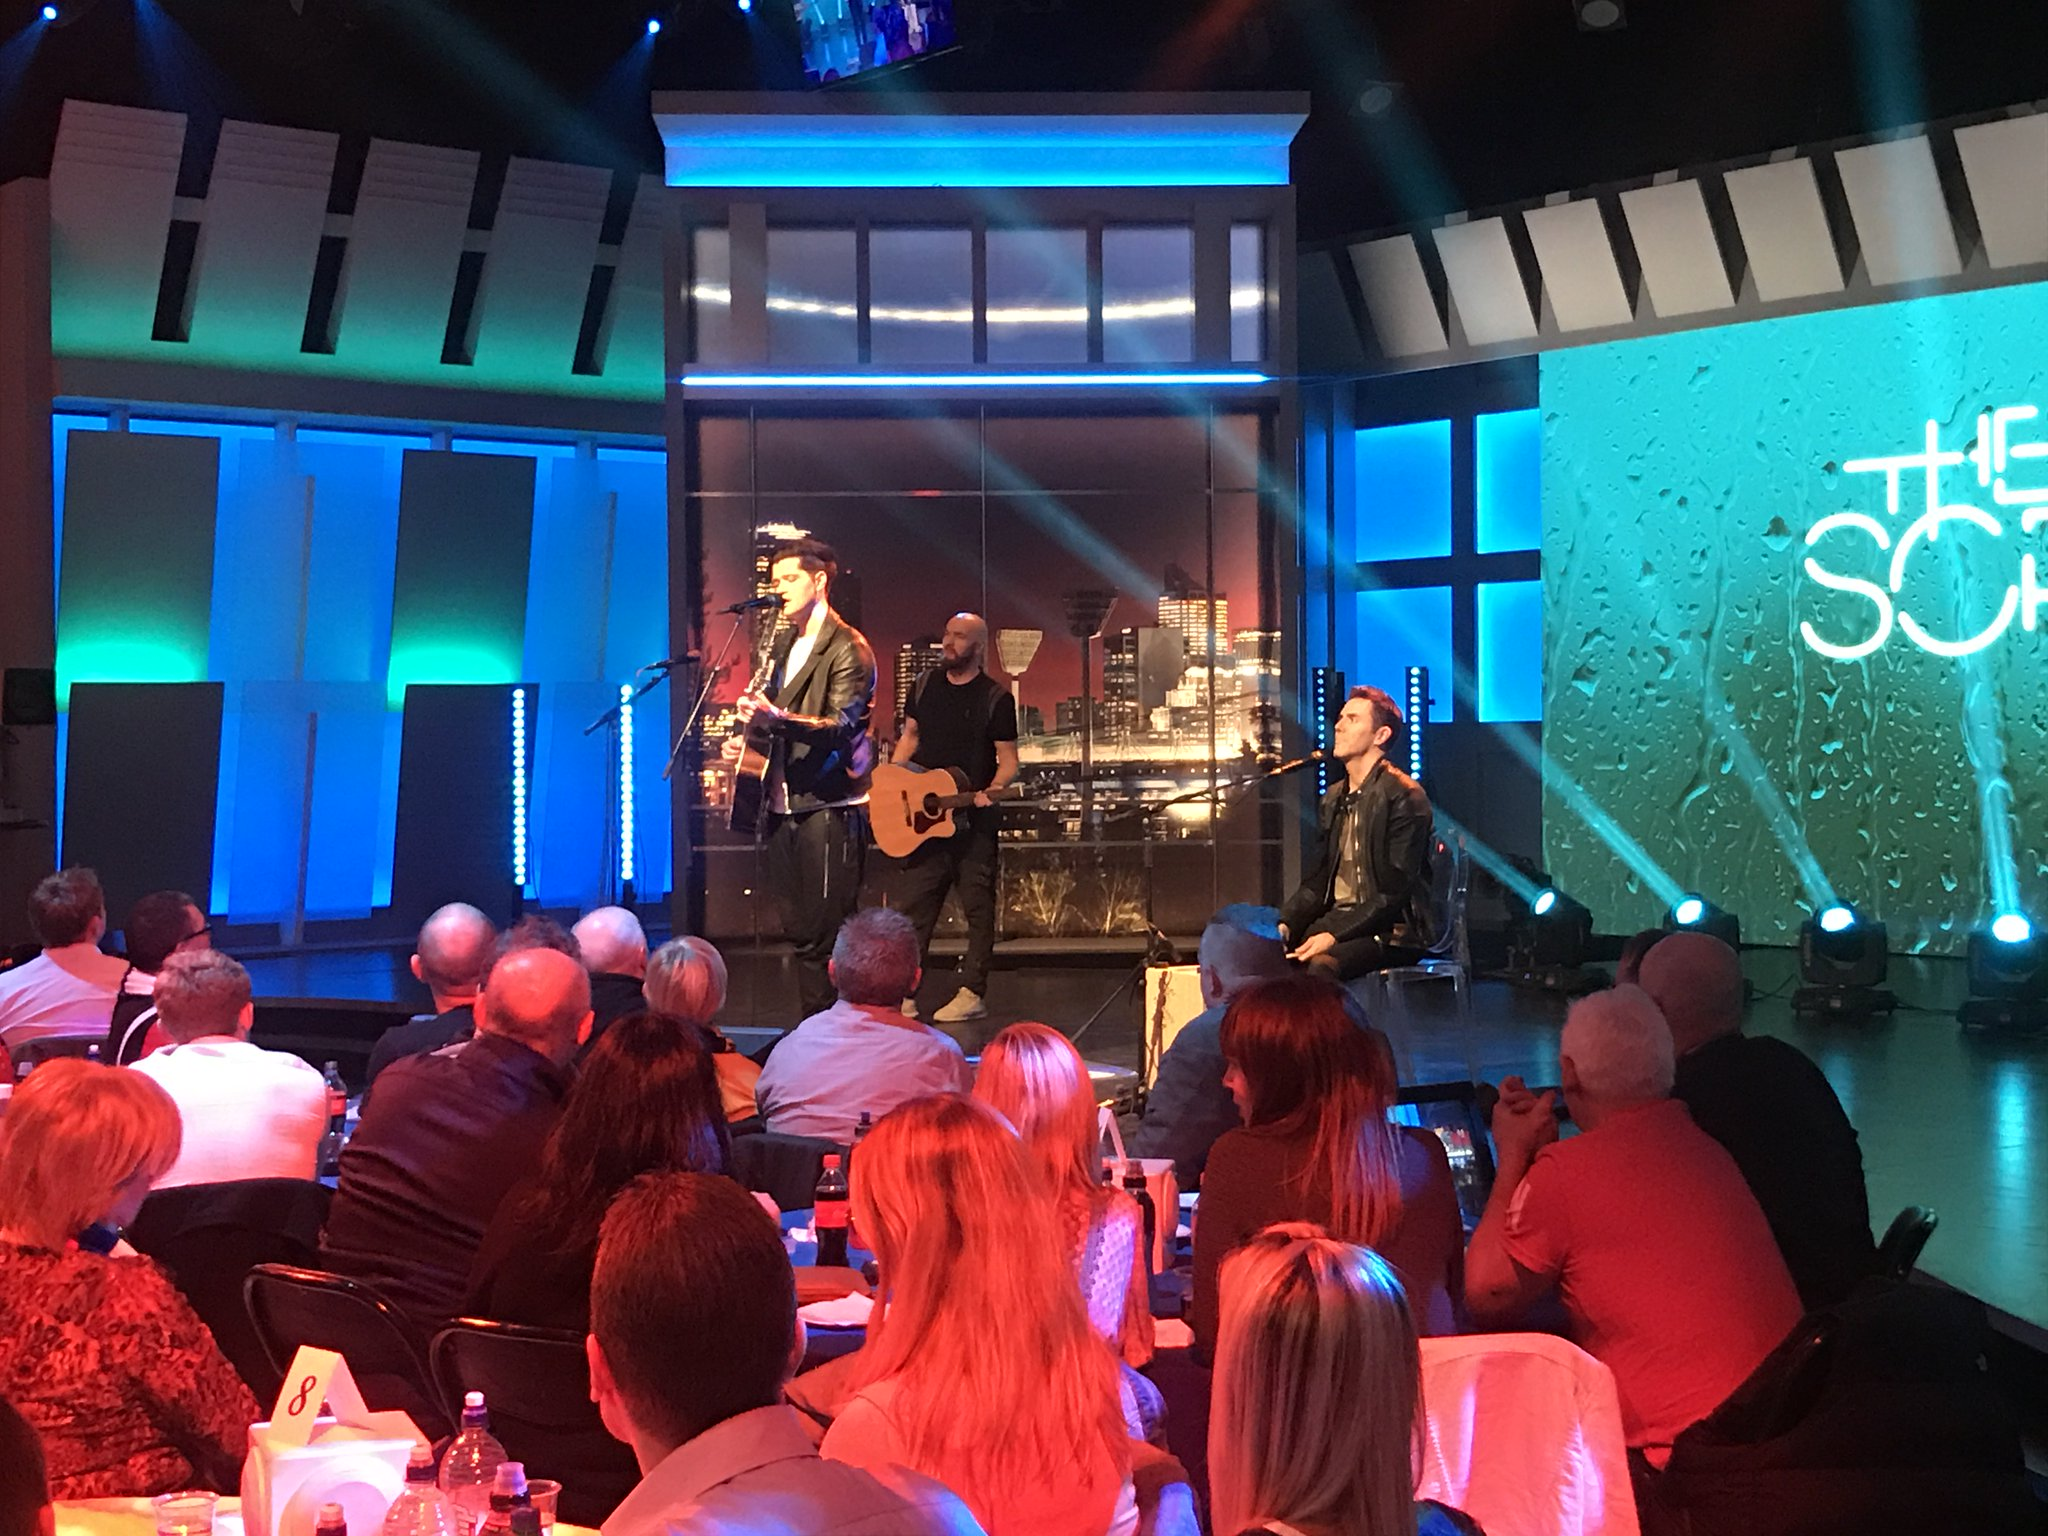 Amazing time performing on @AFLFootyShow in Australia this evening!! #9AFLFootyShow https://t.co/9lZT51MKti